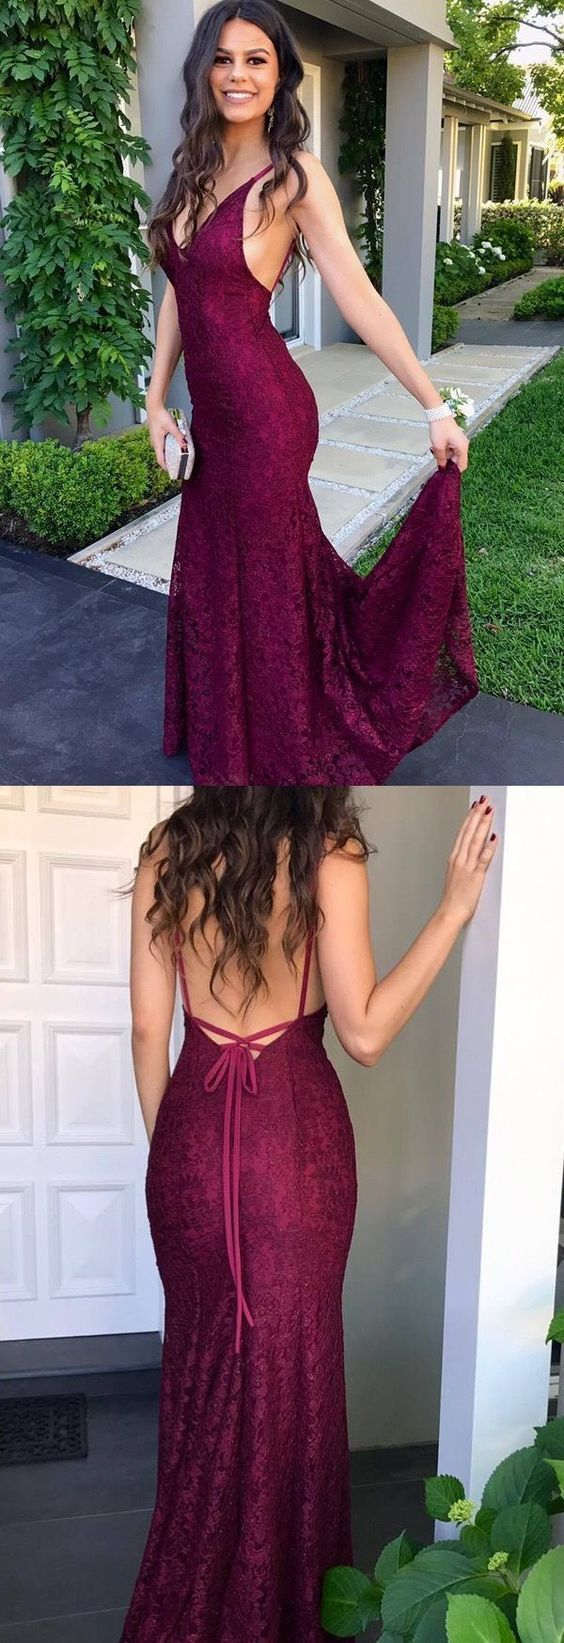 Simple burgundy lace prom dresses elegant mermaid backless wedding